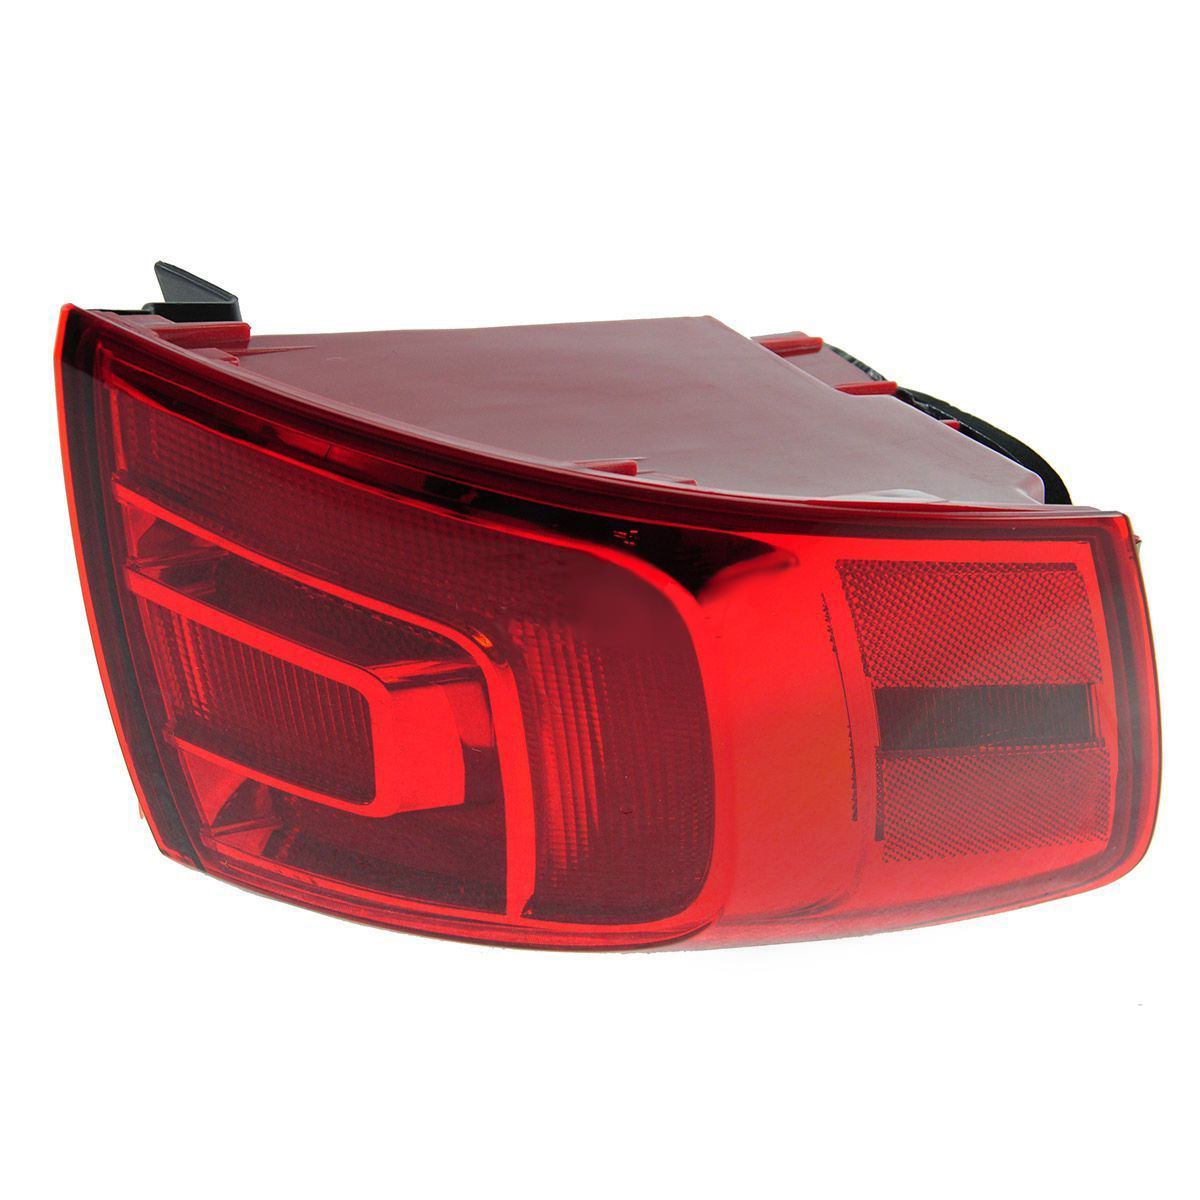 NEW LEFT TAIL LIGHT FITS VOLKSWAGEN JETTA SEDAN 2011-15 5C6945095D 5C6-945-095-D VW2804107 5C6 945 095 D